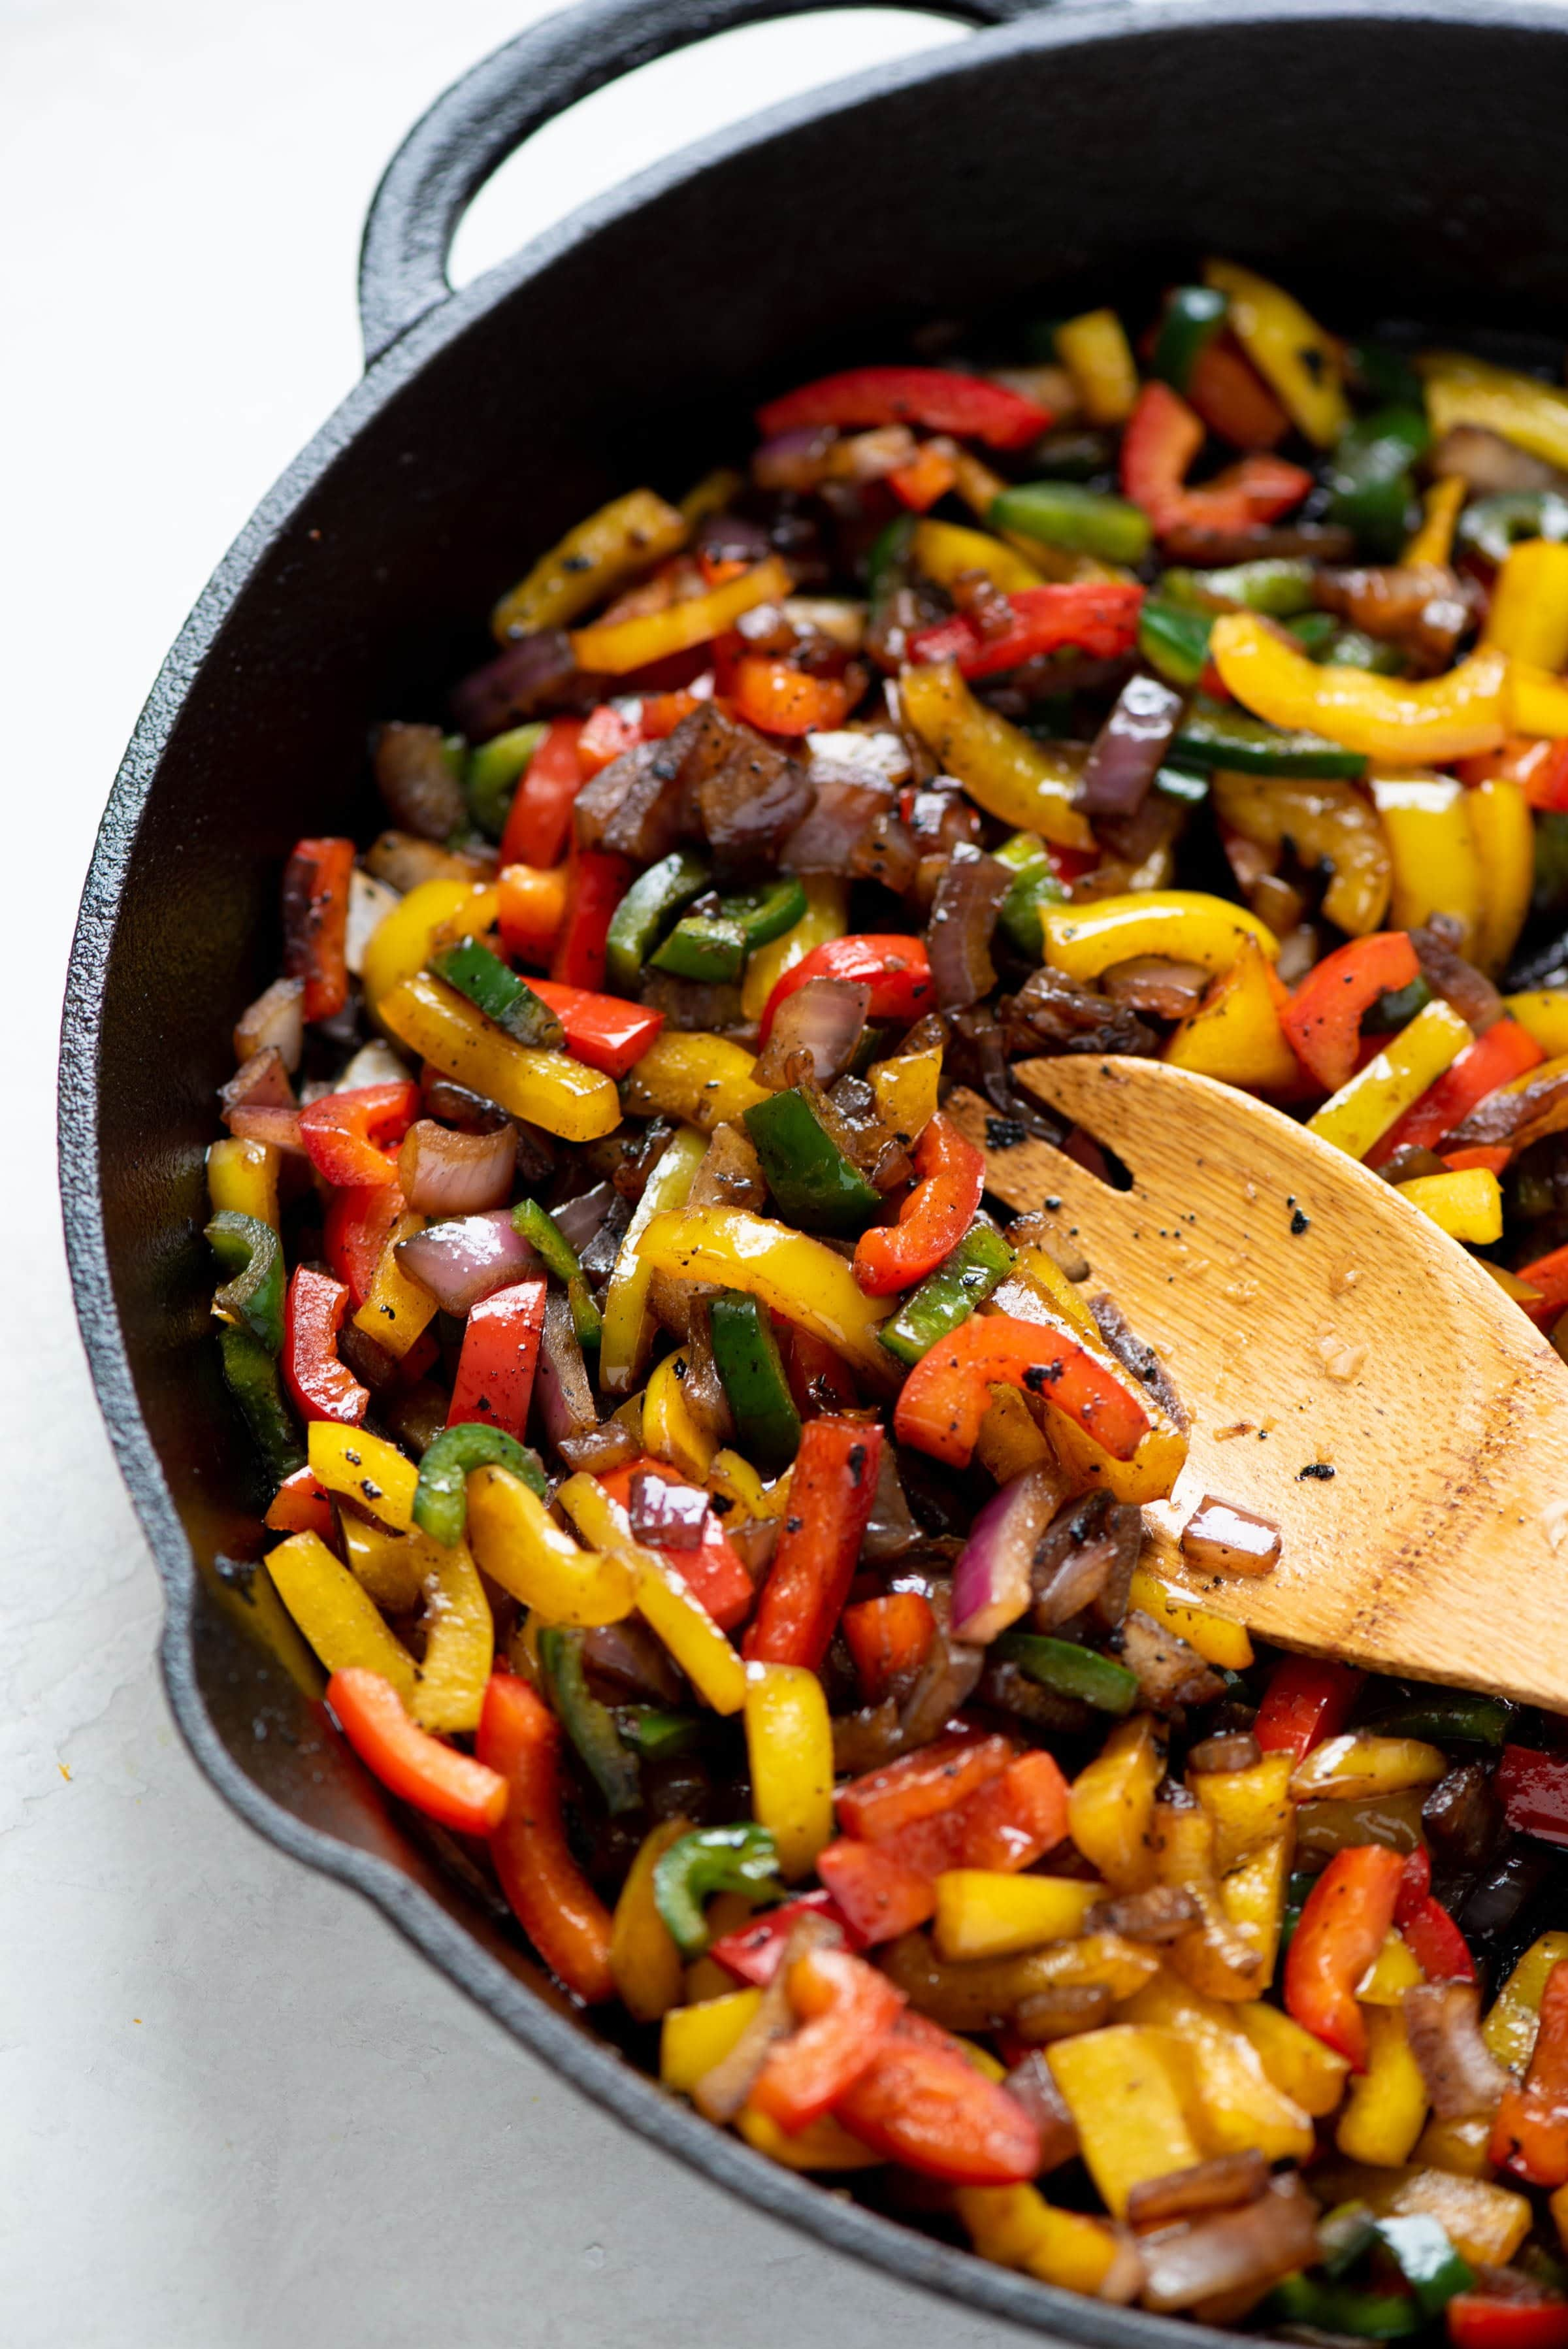 Sautéed peppers and onions in a cast iron skillet, being stirred with a wooden spoon